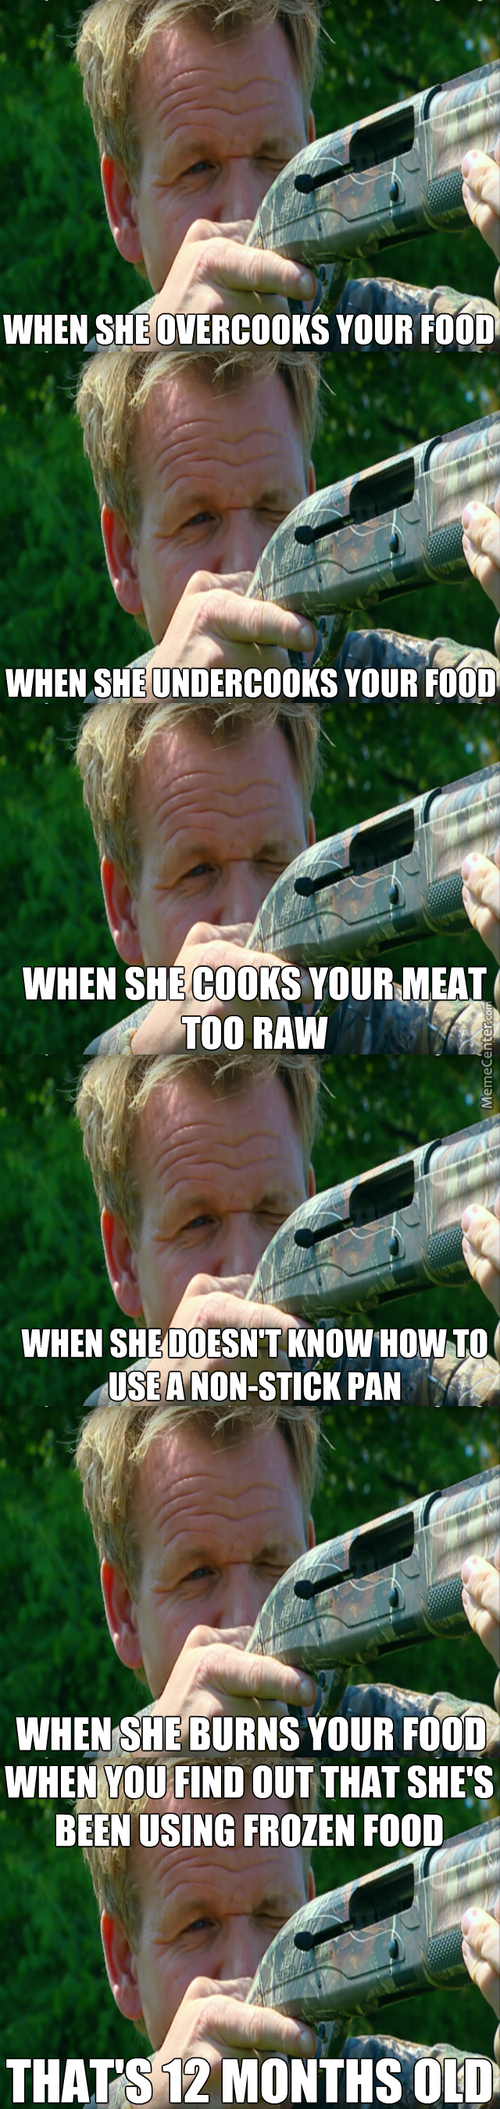 """this Meme Is So F**king Dank It Got Featured!"" -Gordon Ramsay, 2016"